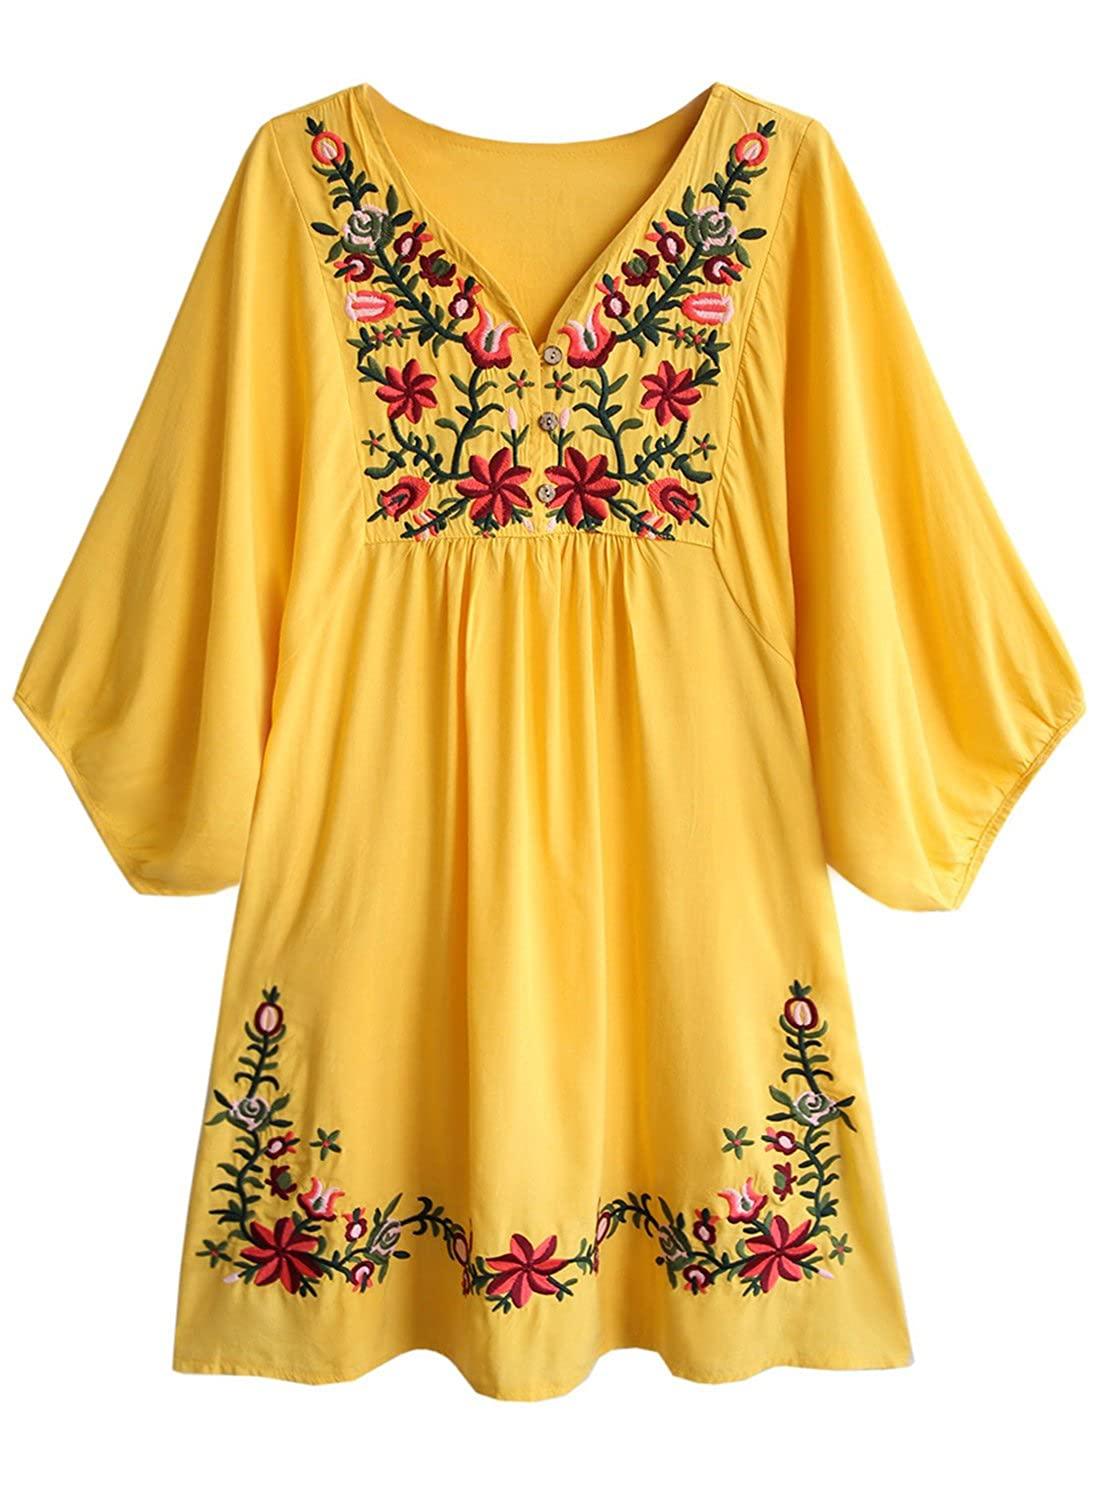 75a37671440380 Doballa Women's Floral Embroidery Mexican Tunic Top Bohemian Flowy Shift  Mini Blouse Dress